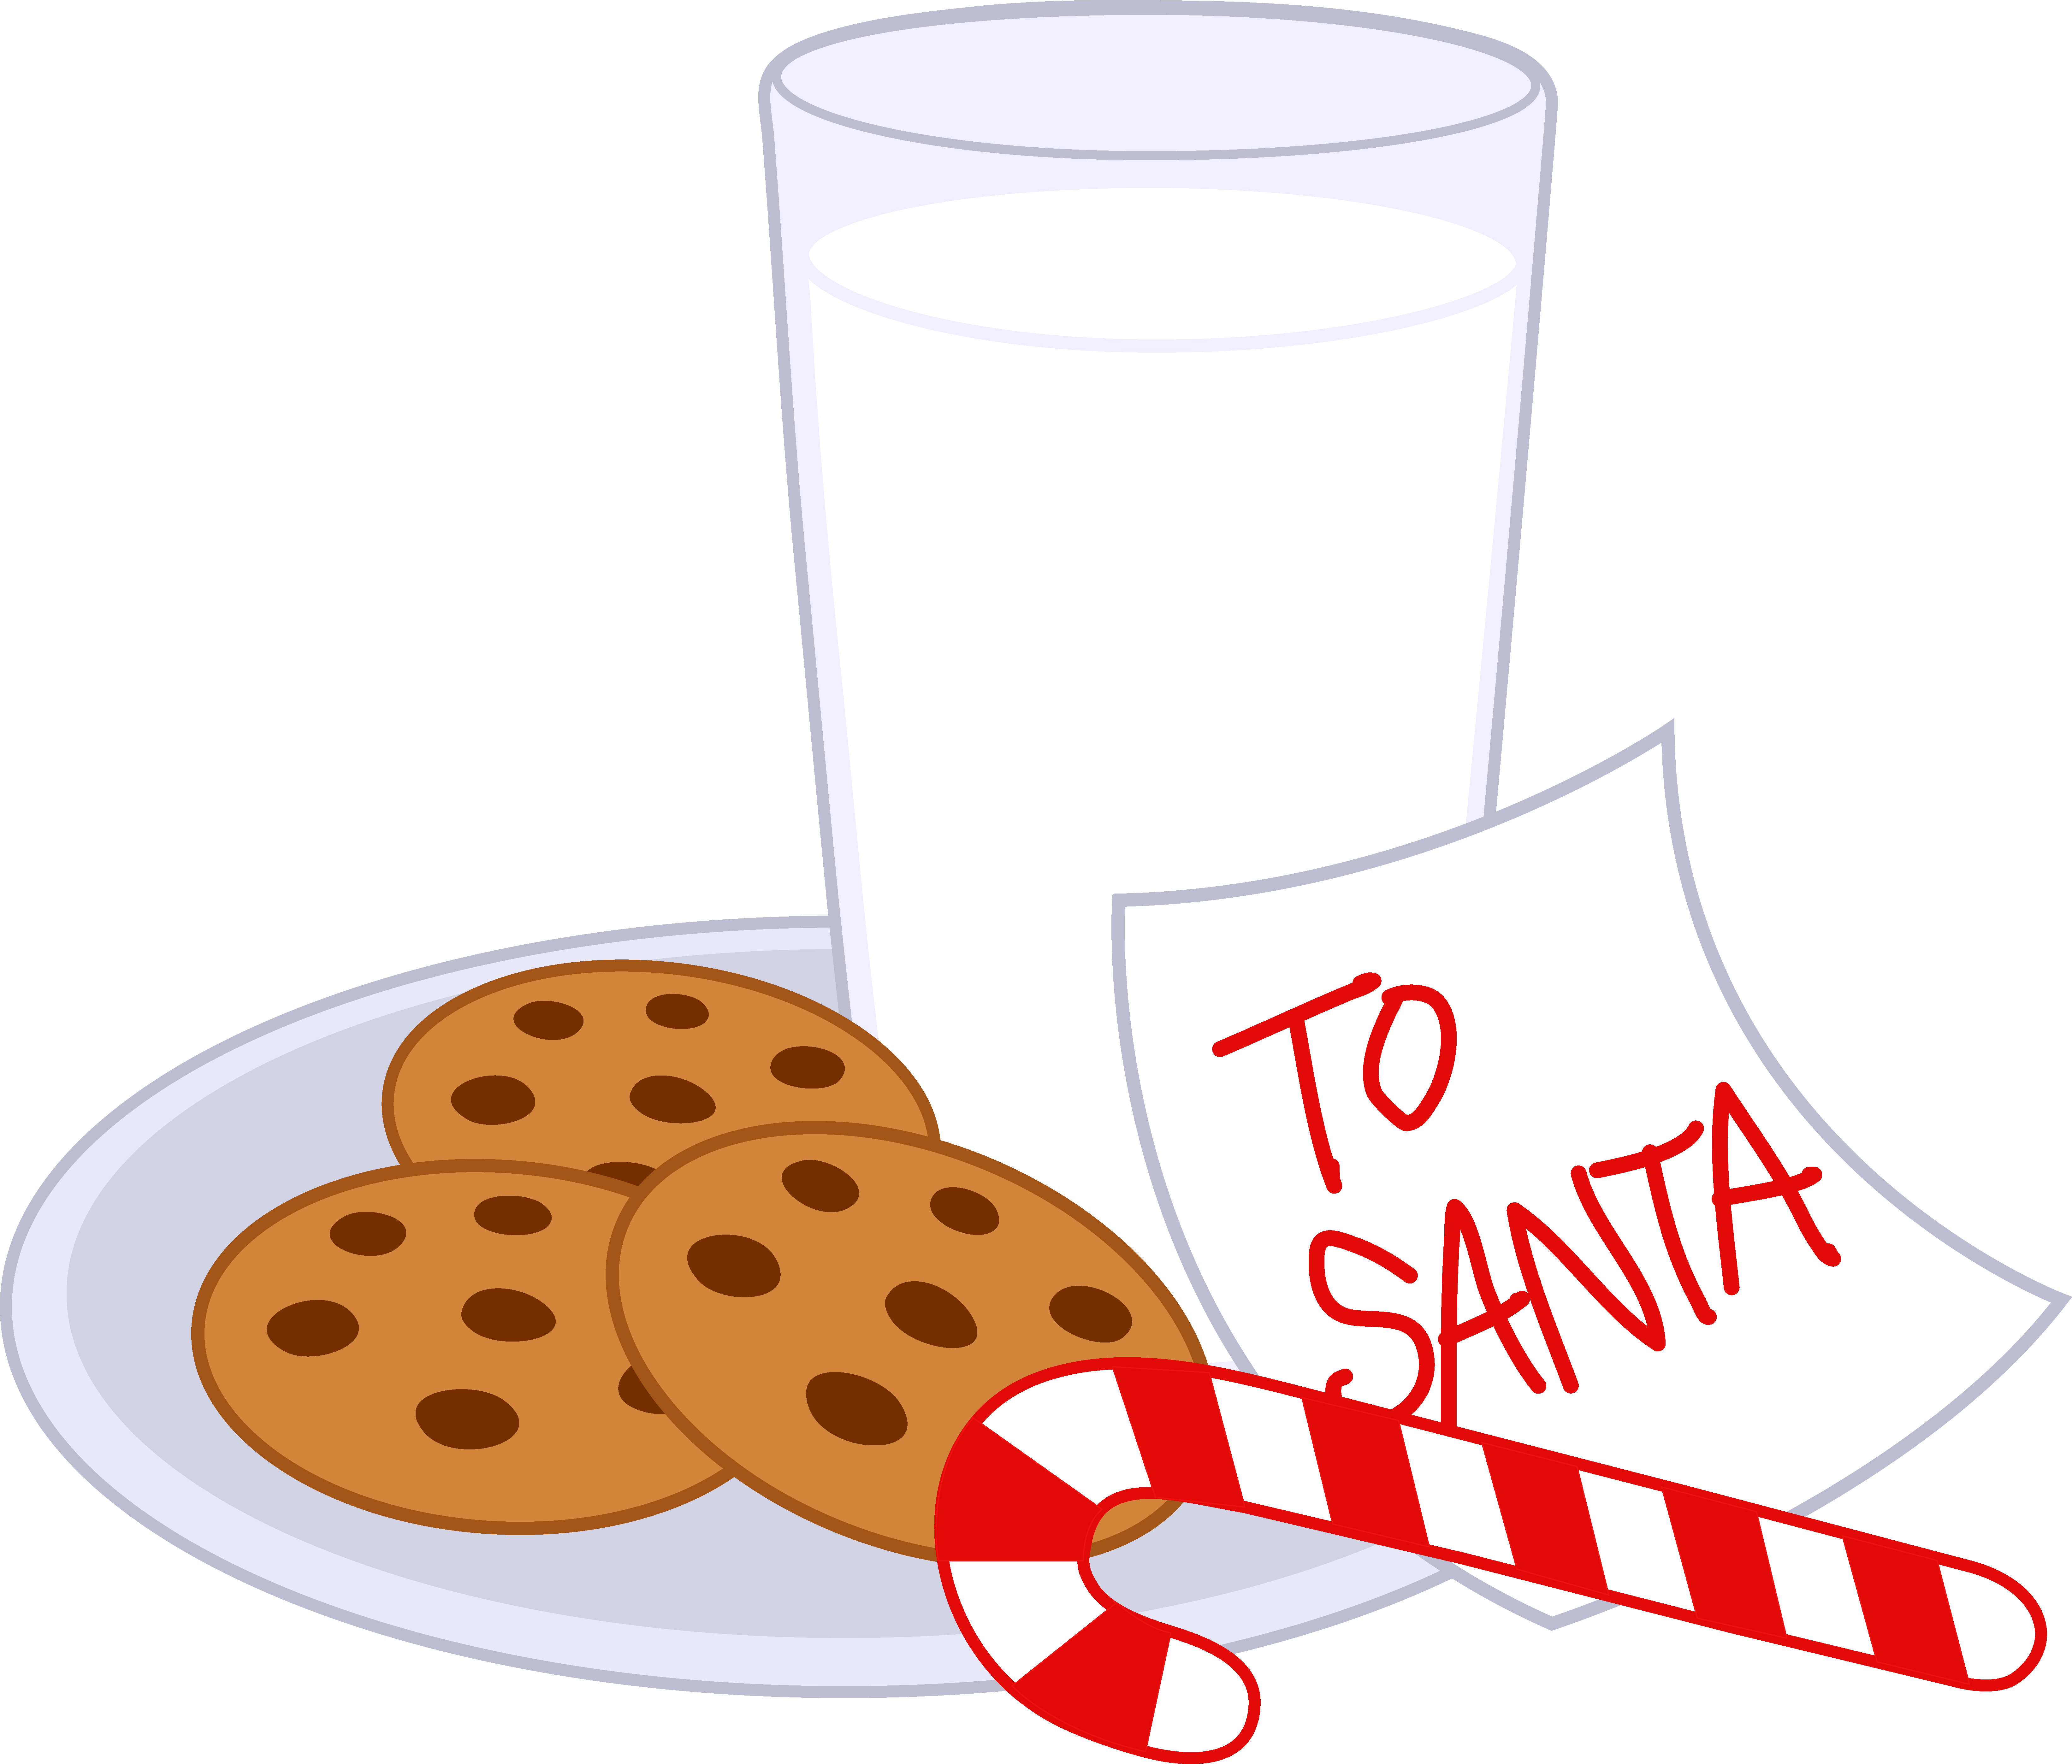 Free Free Pictures Of Cookies Download Free Clip Art